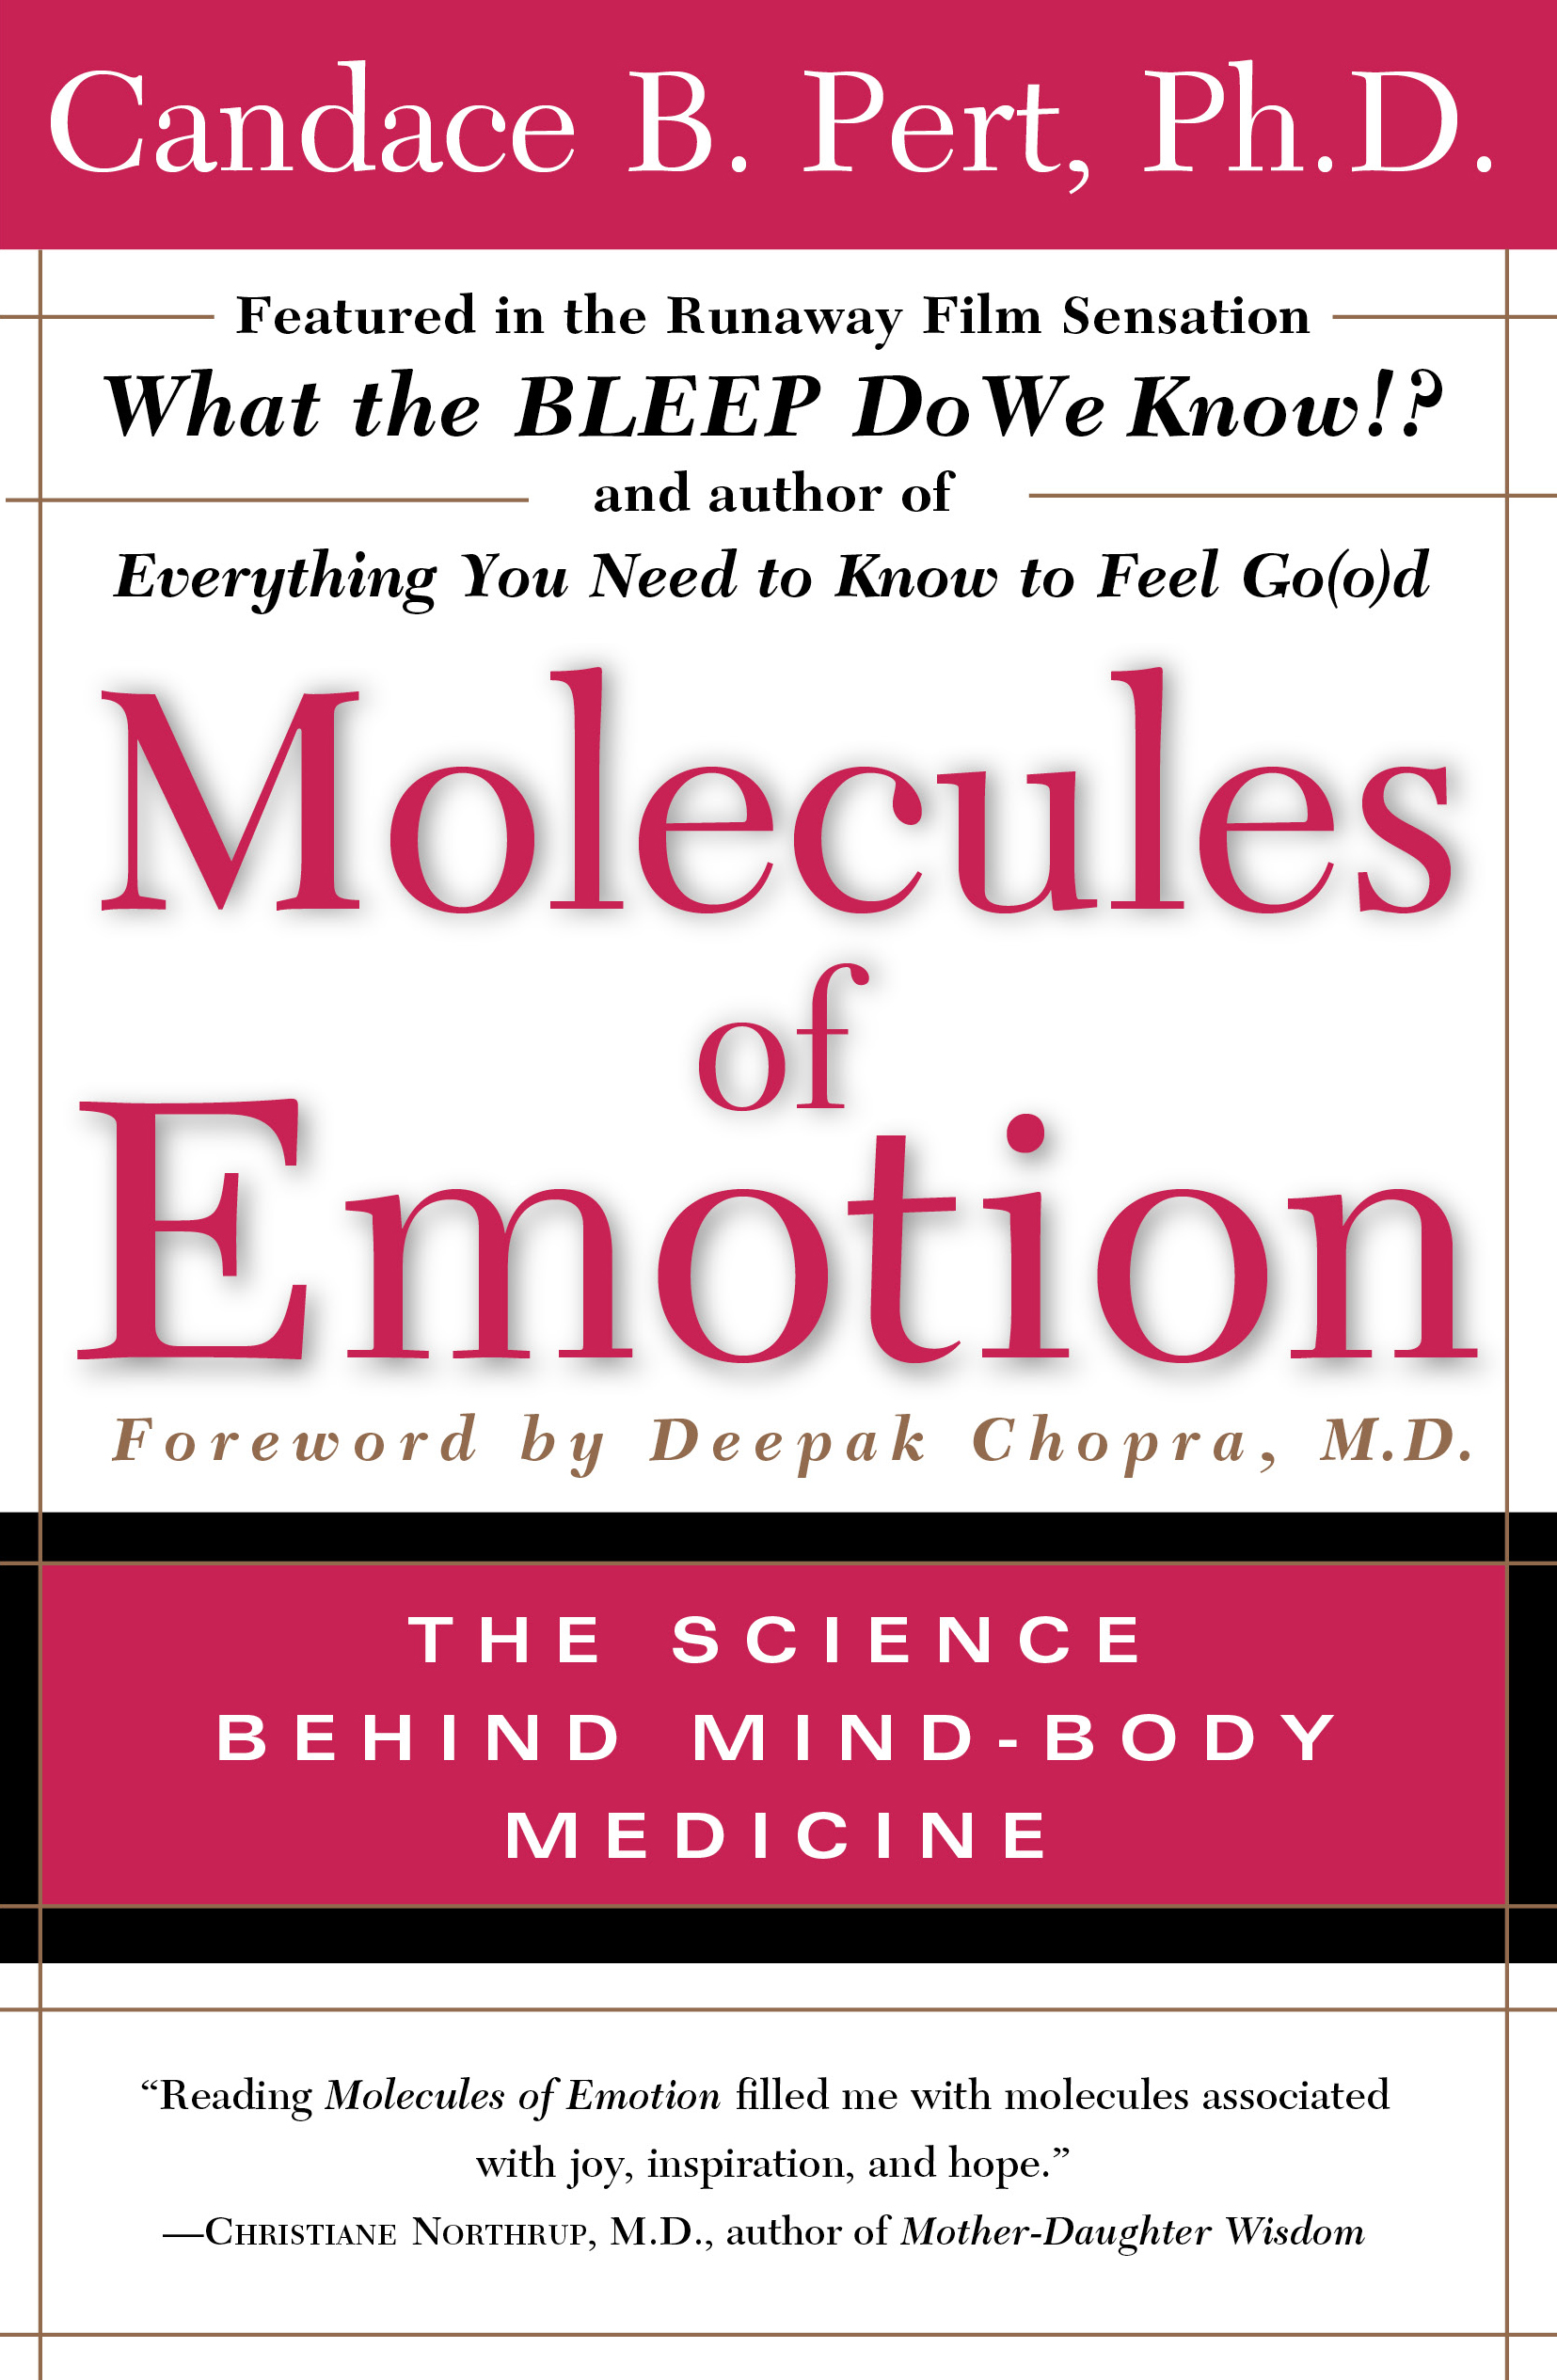 Molecules Of Emotion  Book By Candace B Pert  Official Publisher Page   Simon & Schuster